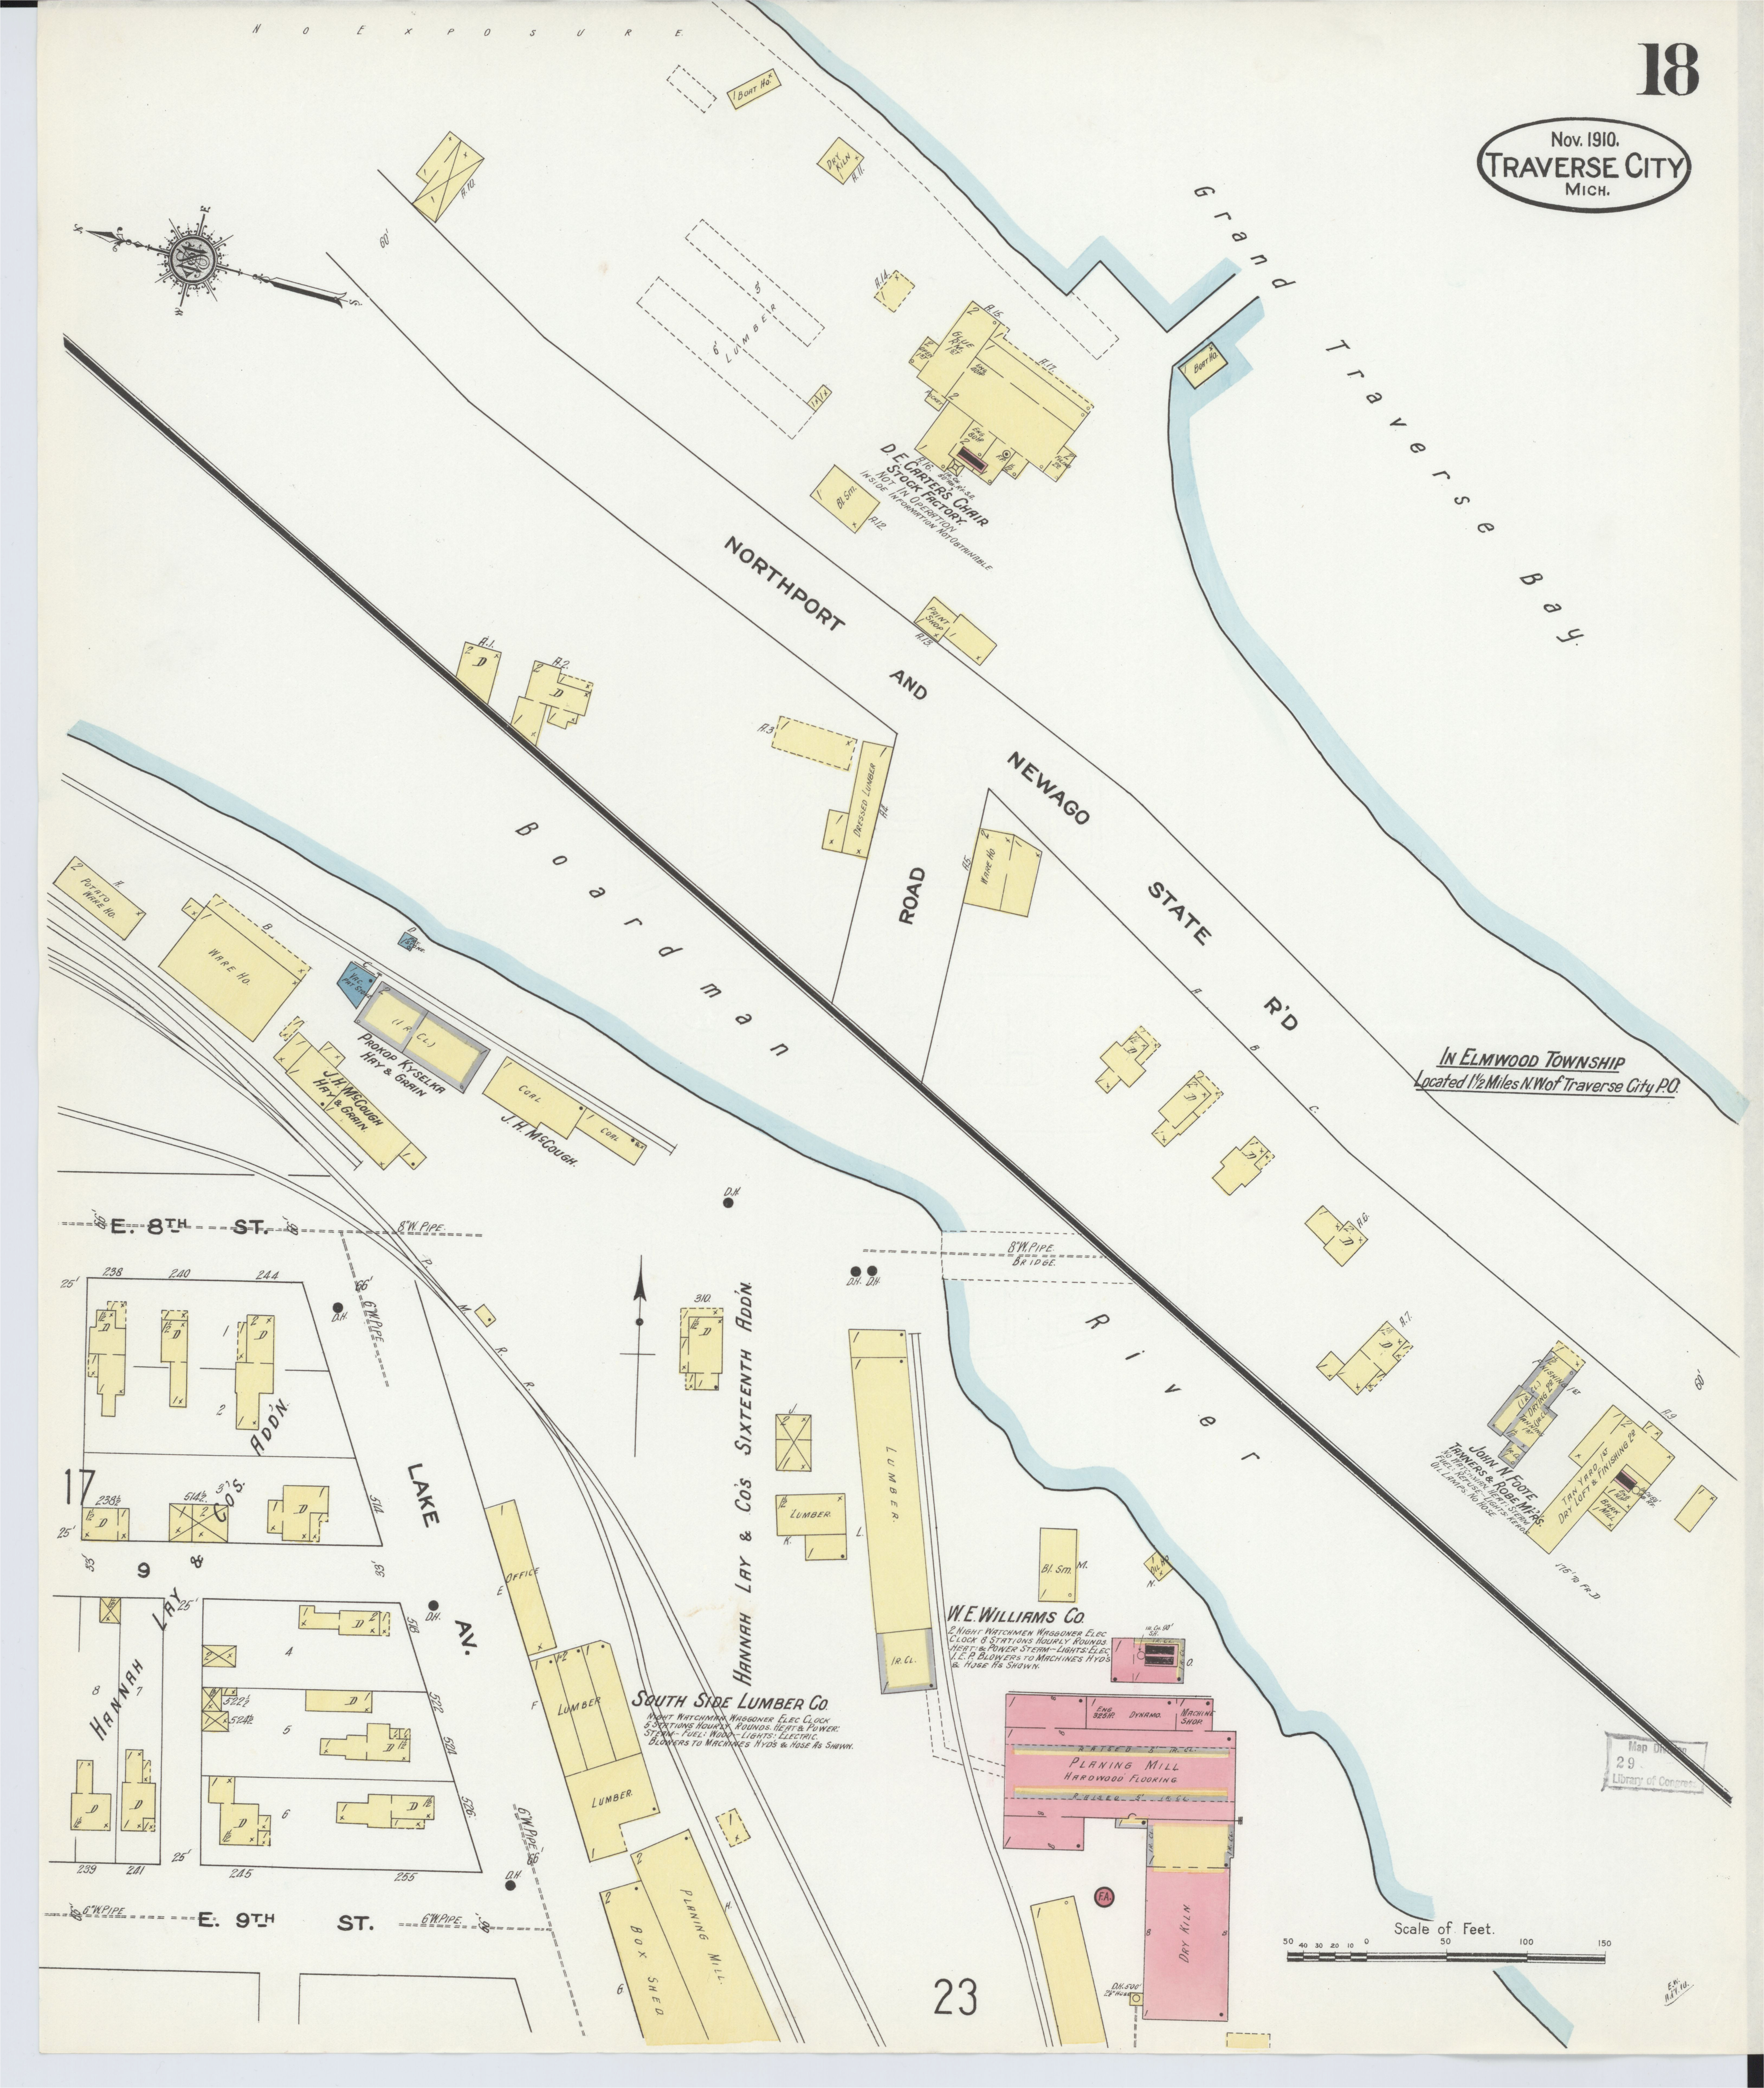 County Map for Michigan File Sanborn Fire Insurance Map From Traverse City Grand Traverse